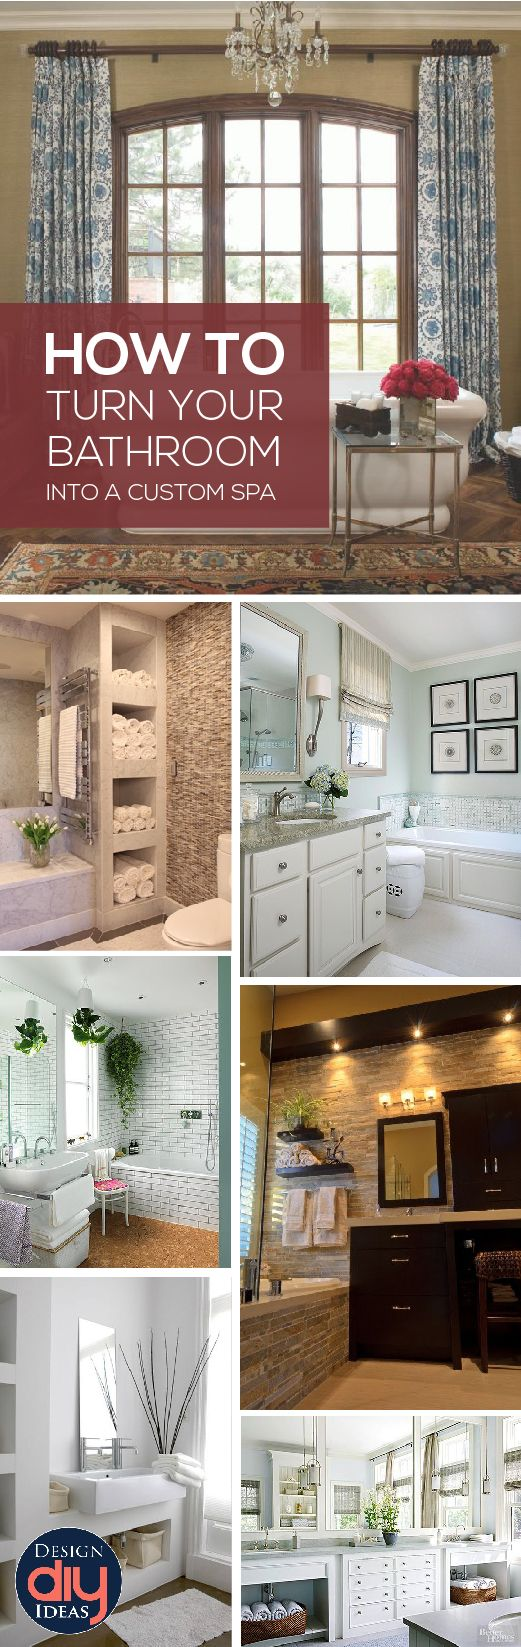 Upgrade Your Bathroom And Turn It To A Custom Spa With A Few Diy